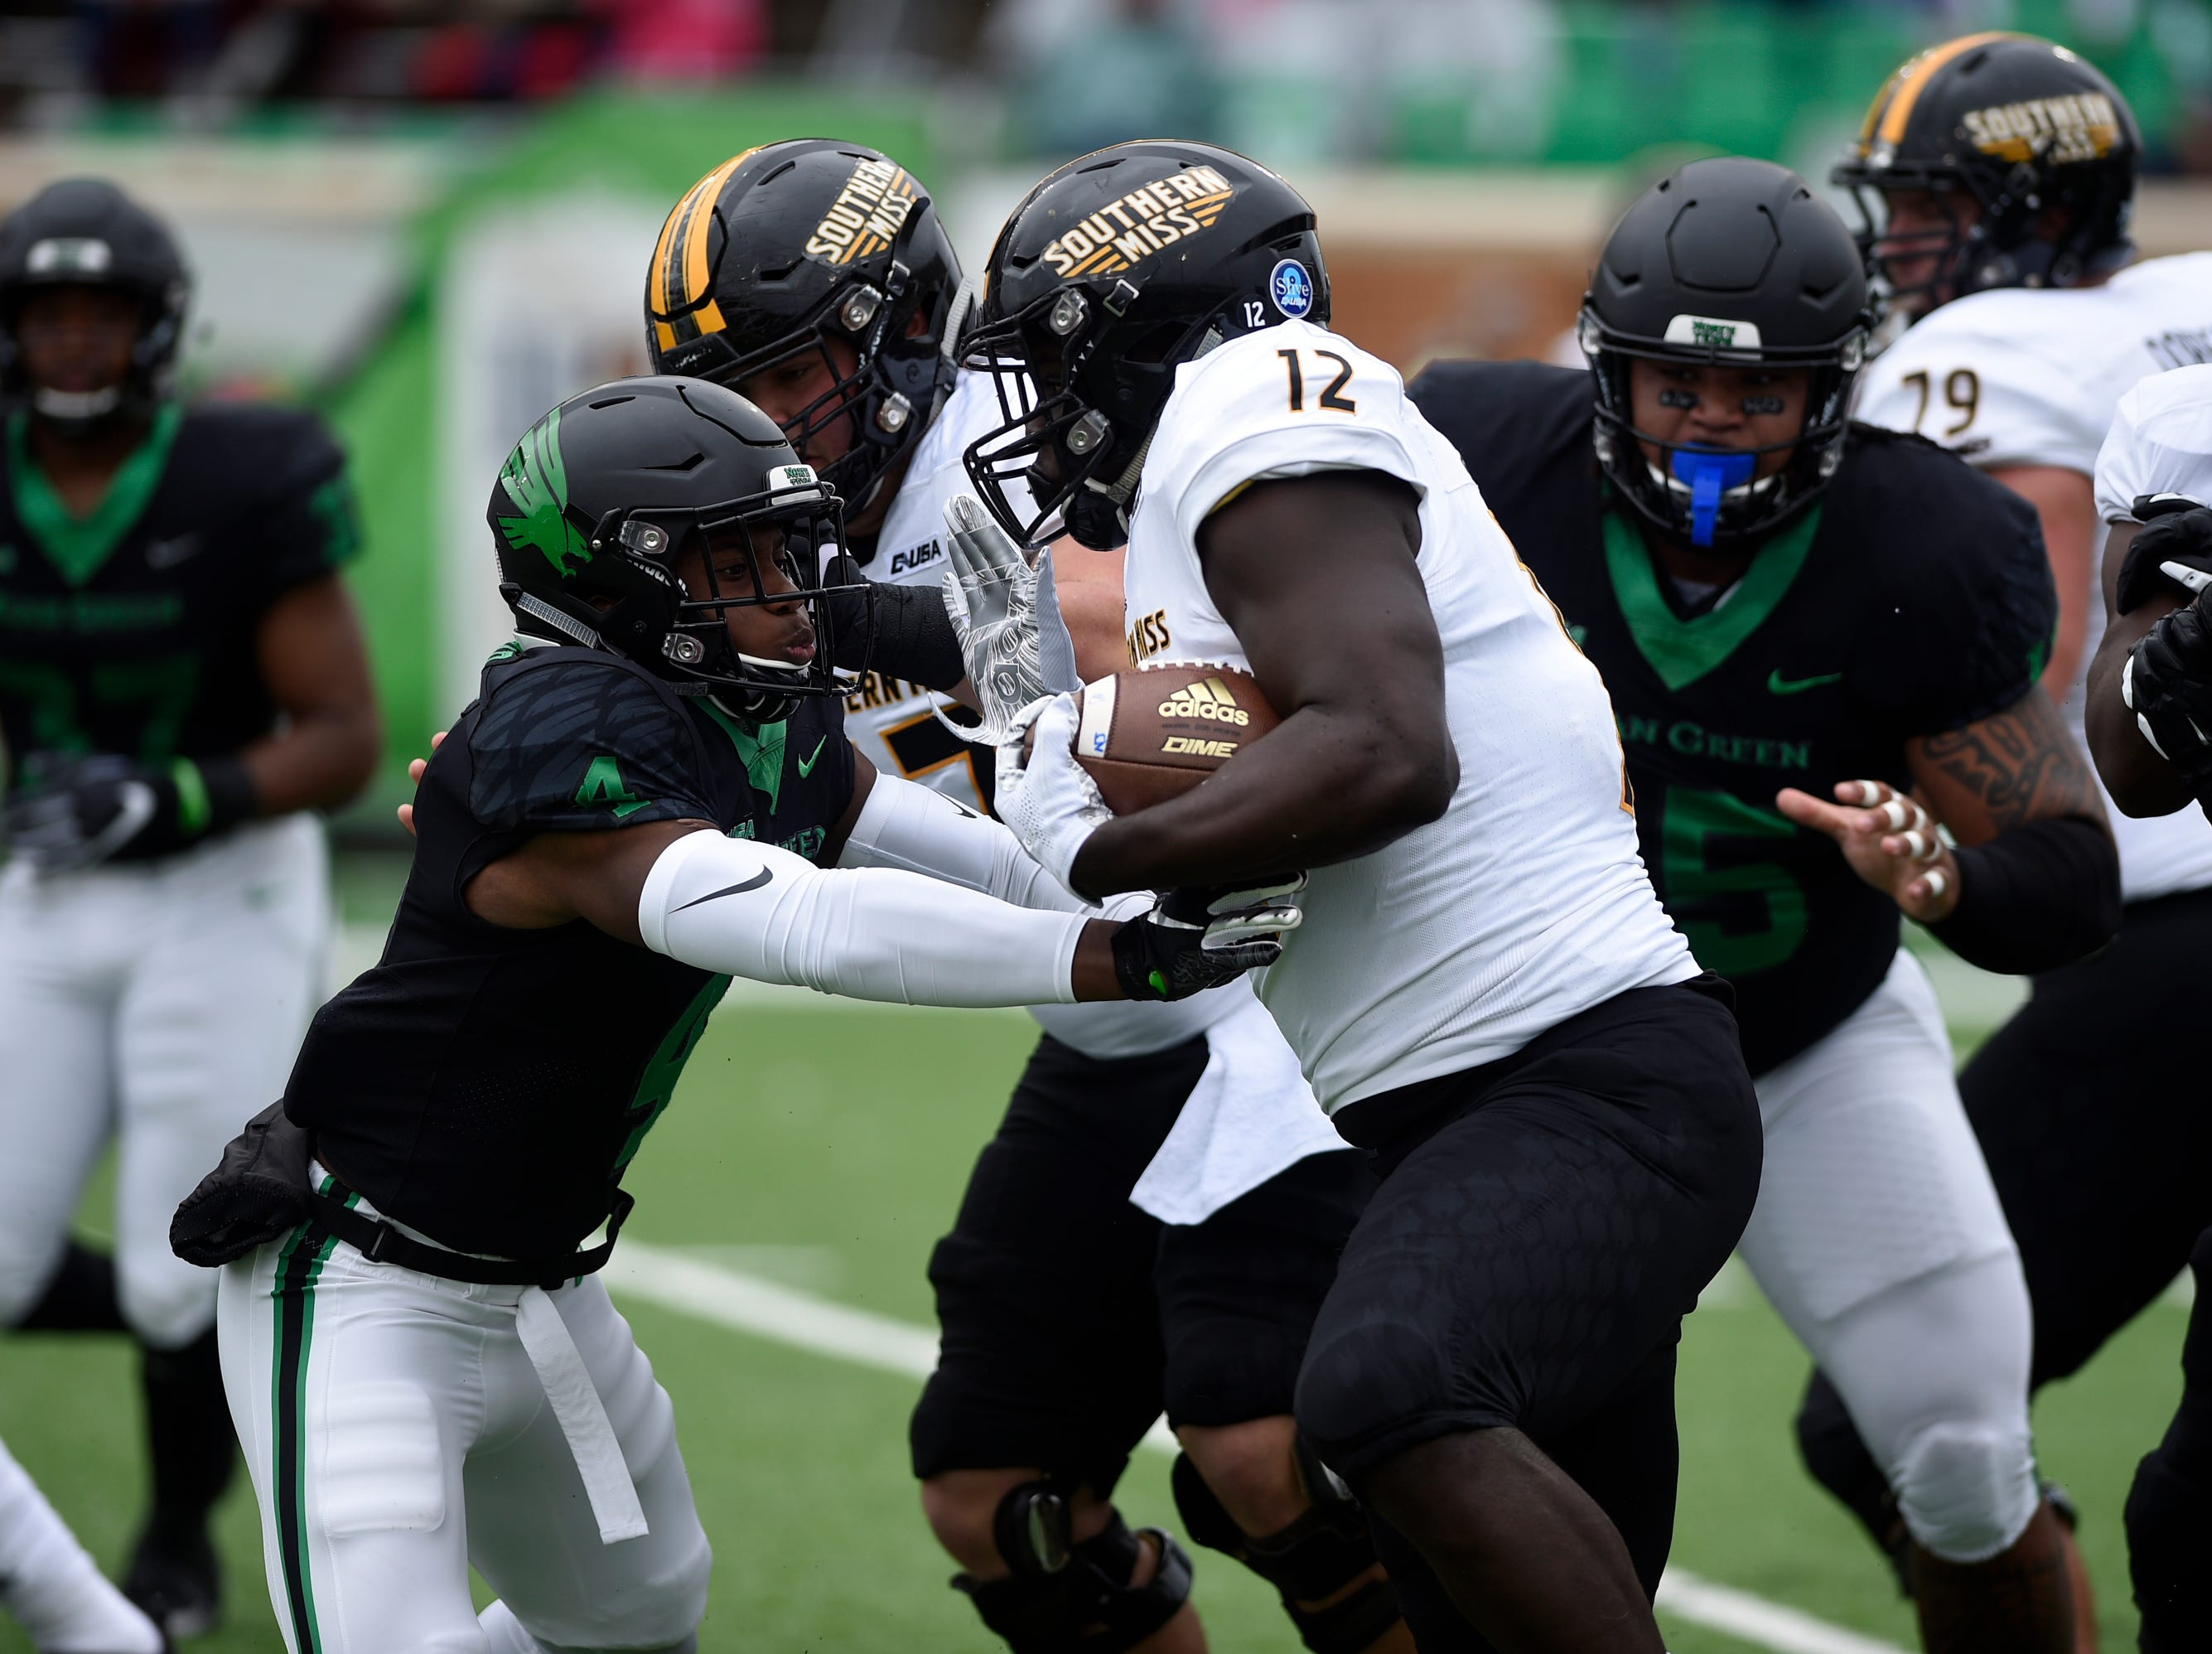 North Texas Mean Green safety Khairi Muhammad (4) charges at Souther Miss running back Steven Anderson (12) during an NCAA college football game at Apogee Stadium in Denton, Texas on Saturday, Oct. 13, 2018.